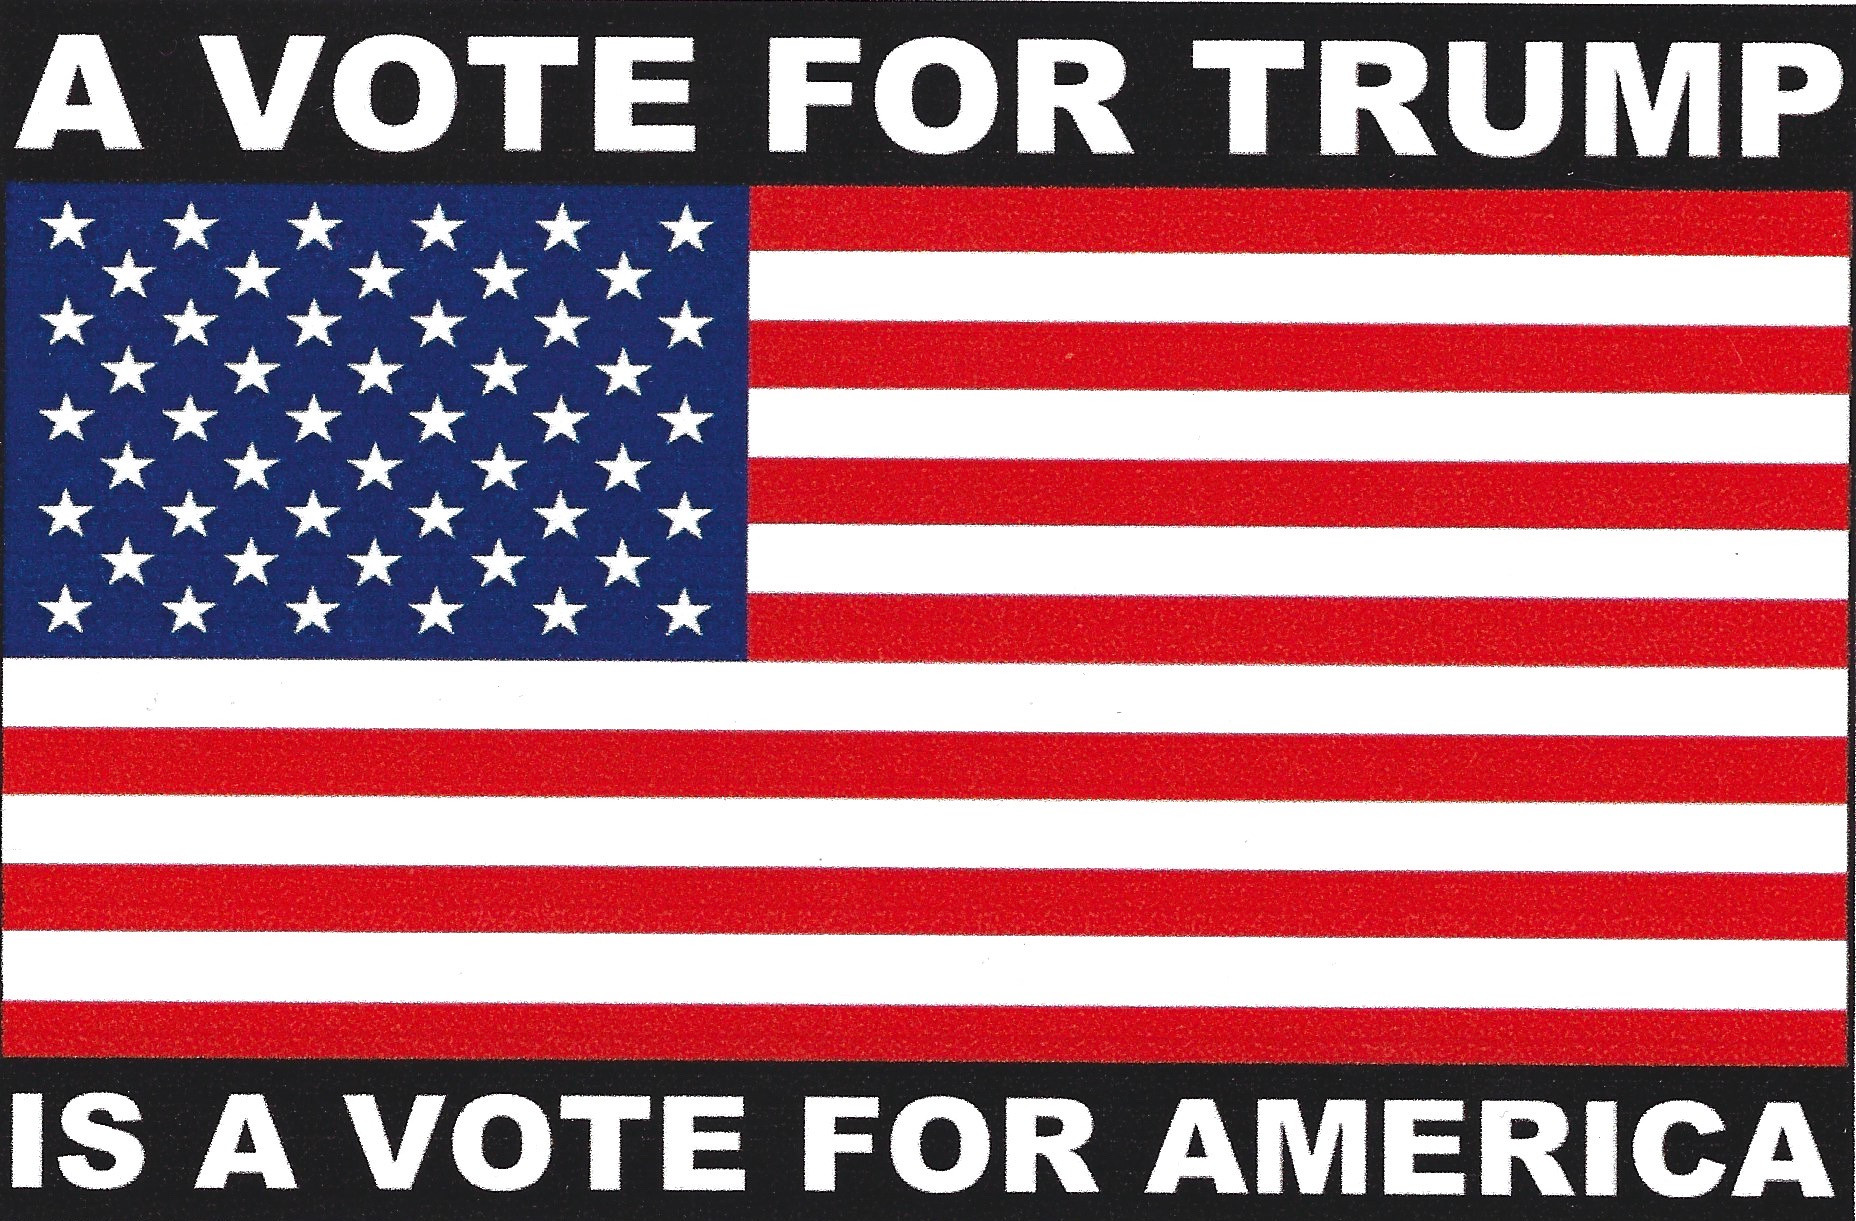 A Vote for Trump is a Vote for America